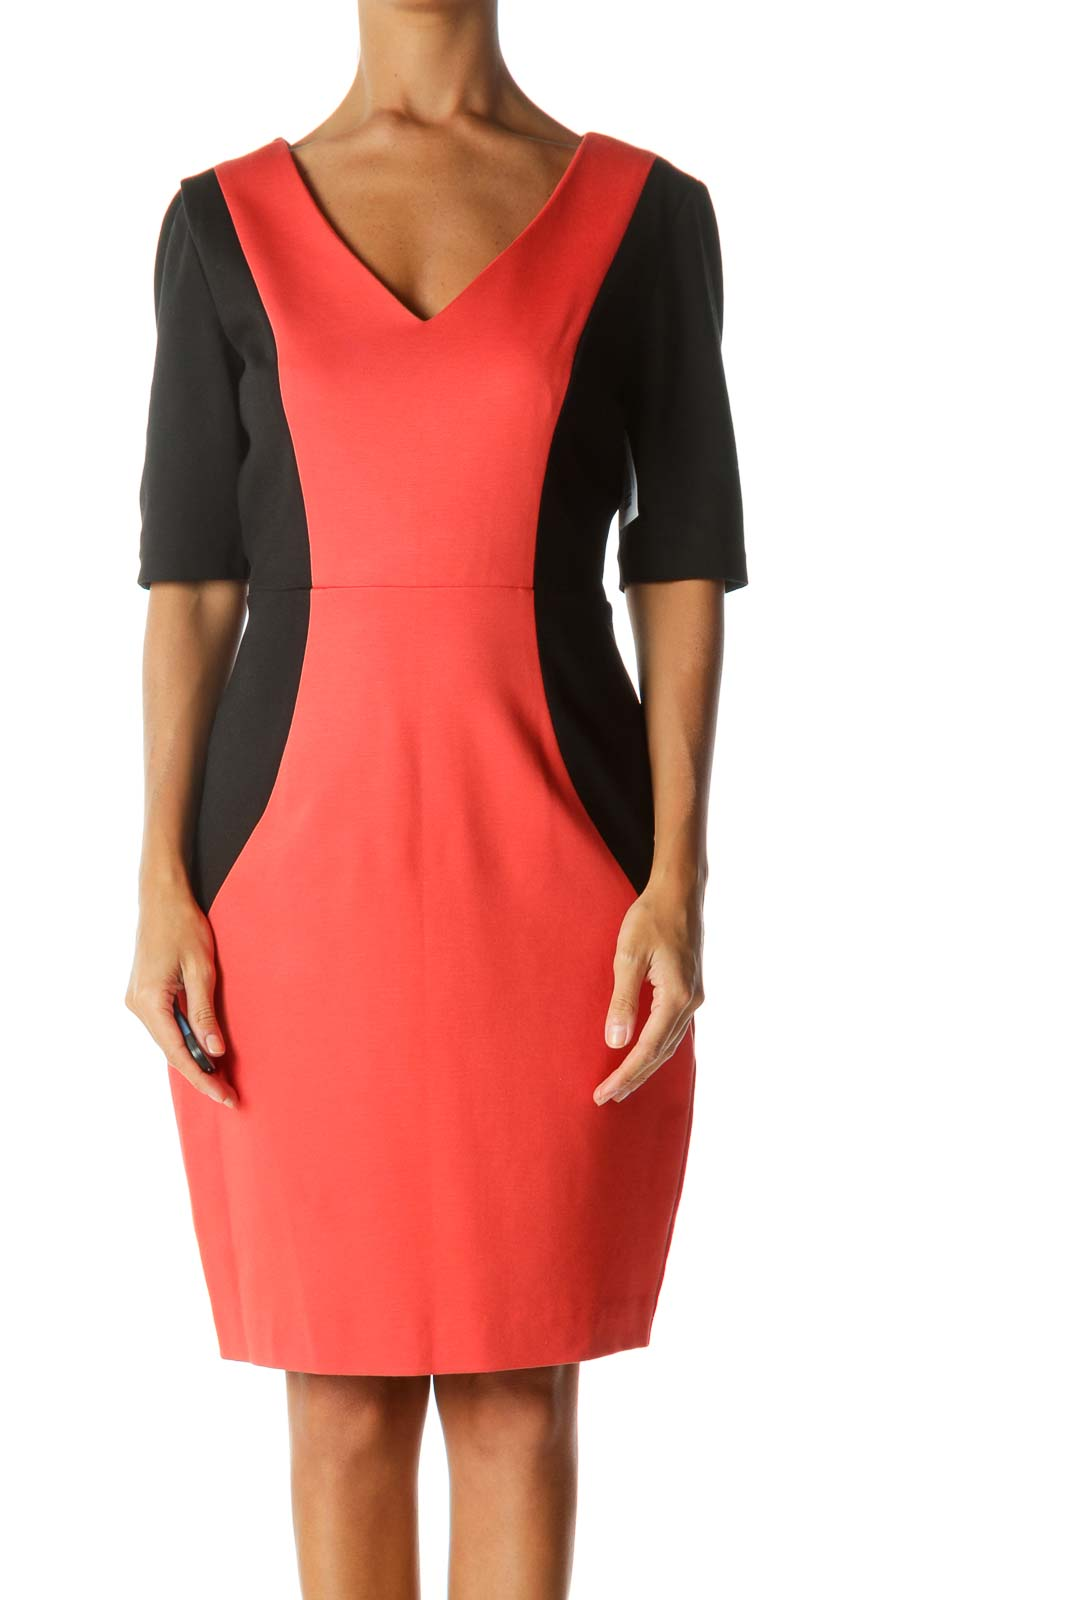 Orange & Black Color-Block Short-Sleeve V-Neck Work Dress